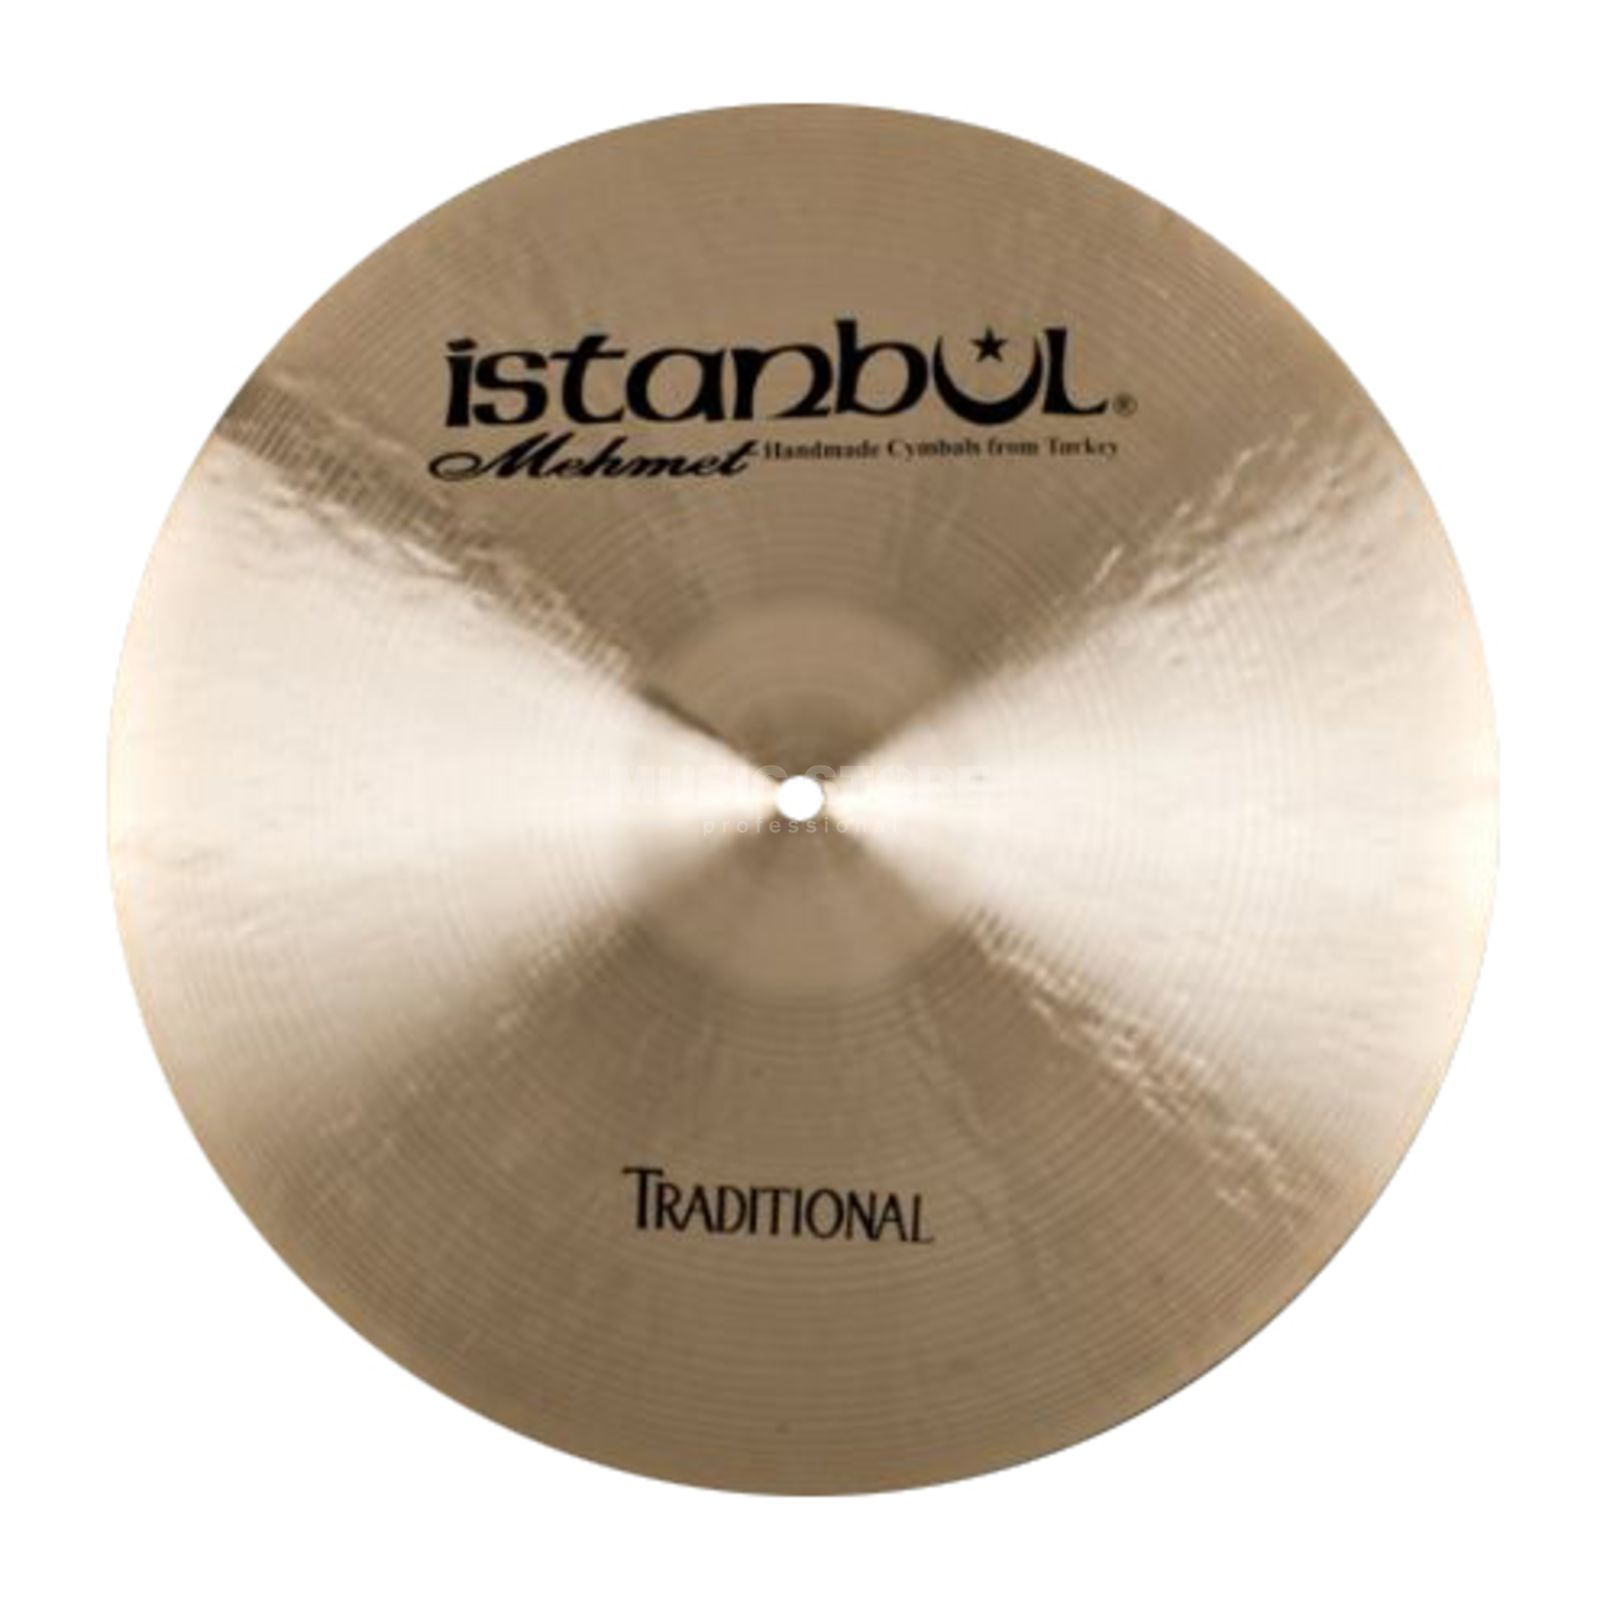 "Istanbul Traditional Heavy Crash 16"", CVY16 Produktbild"